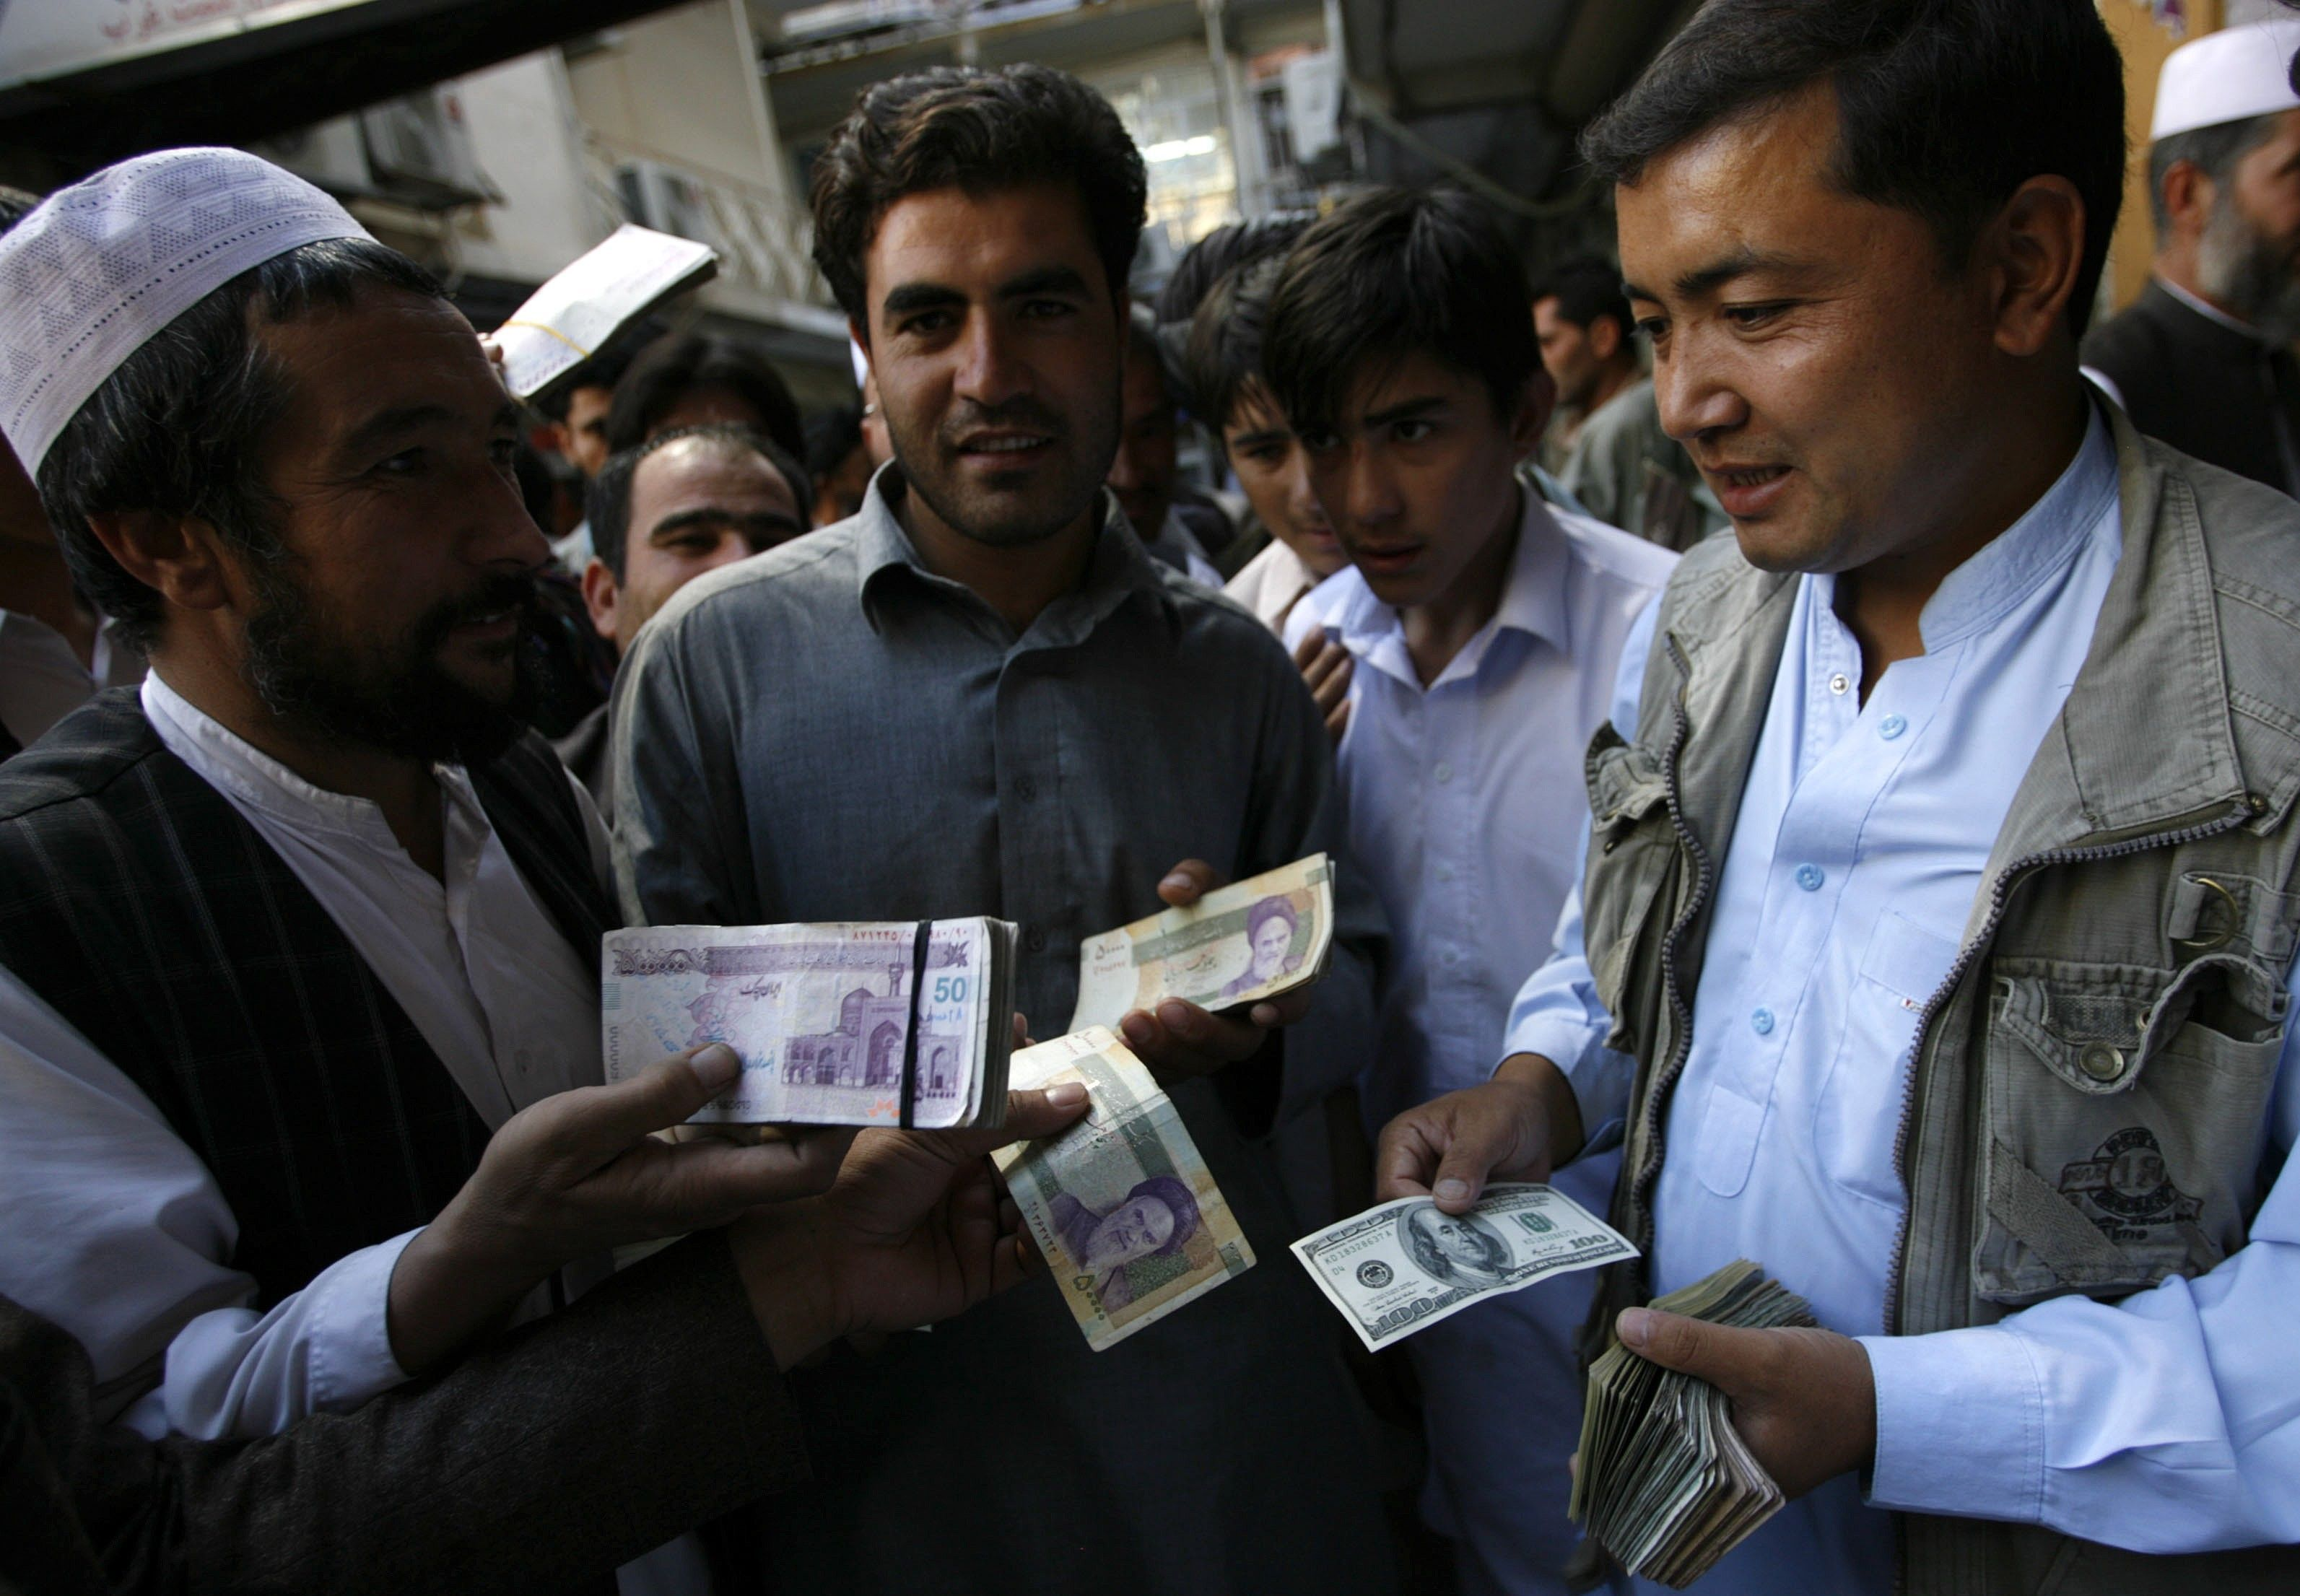 2012-10-04T120000Z_480541450_GM1E8A41LG501_RTRMADP_3_IRAN-CURRENCY-AFGHANISTAN